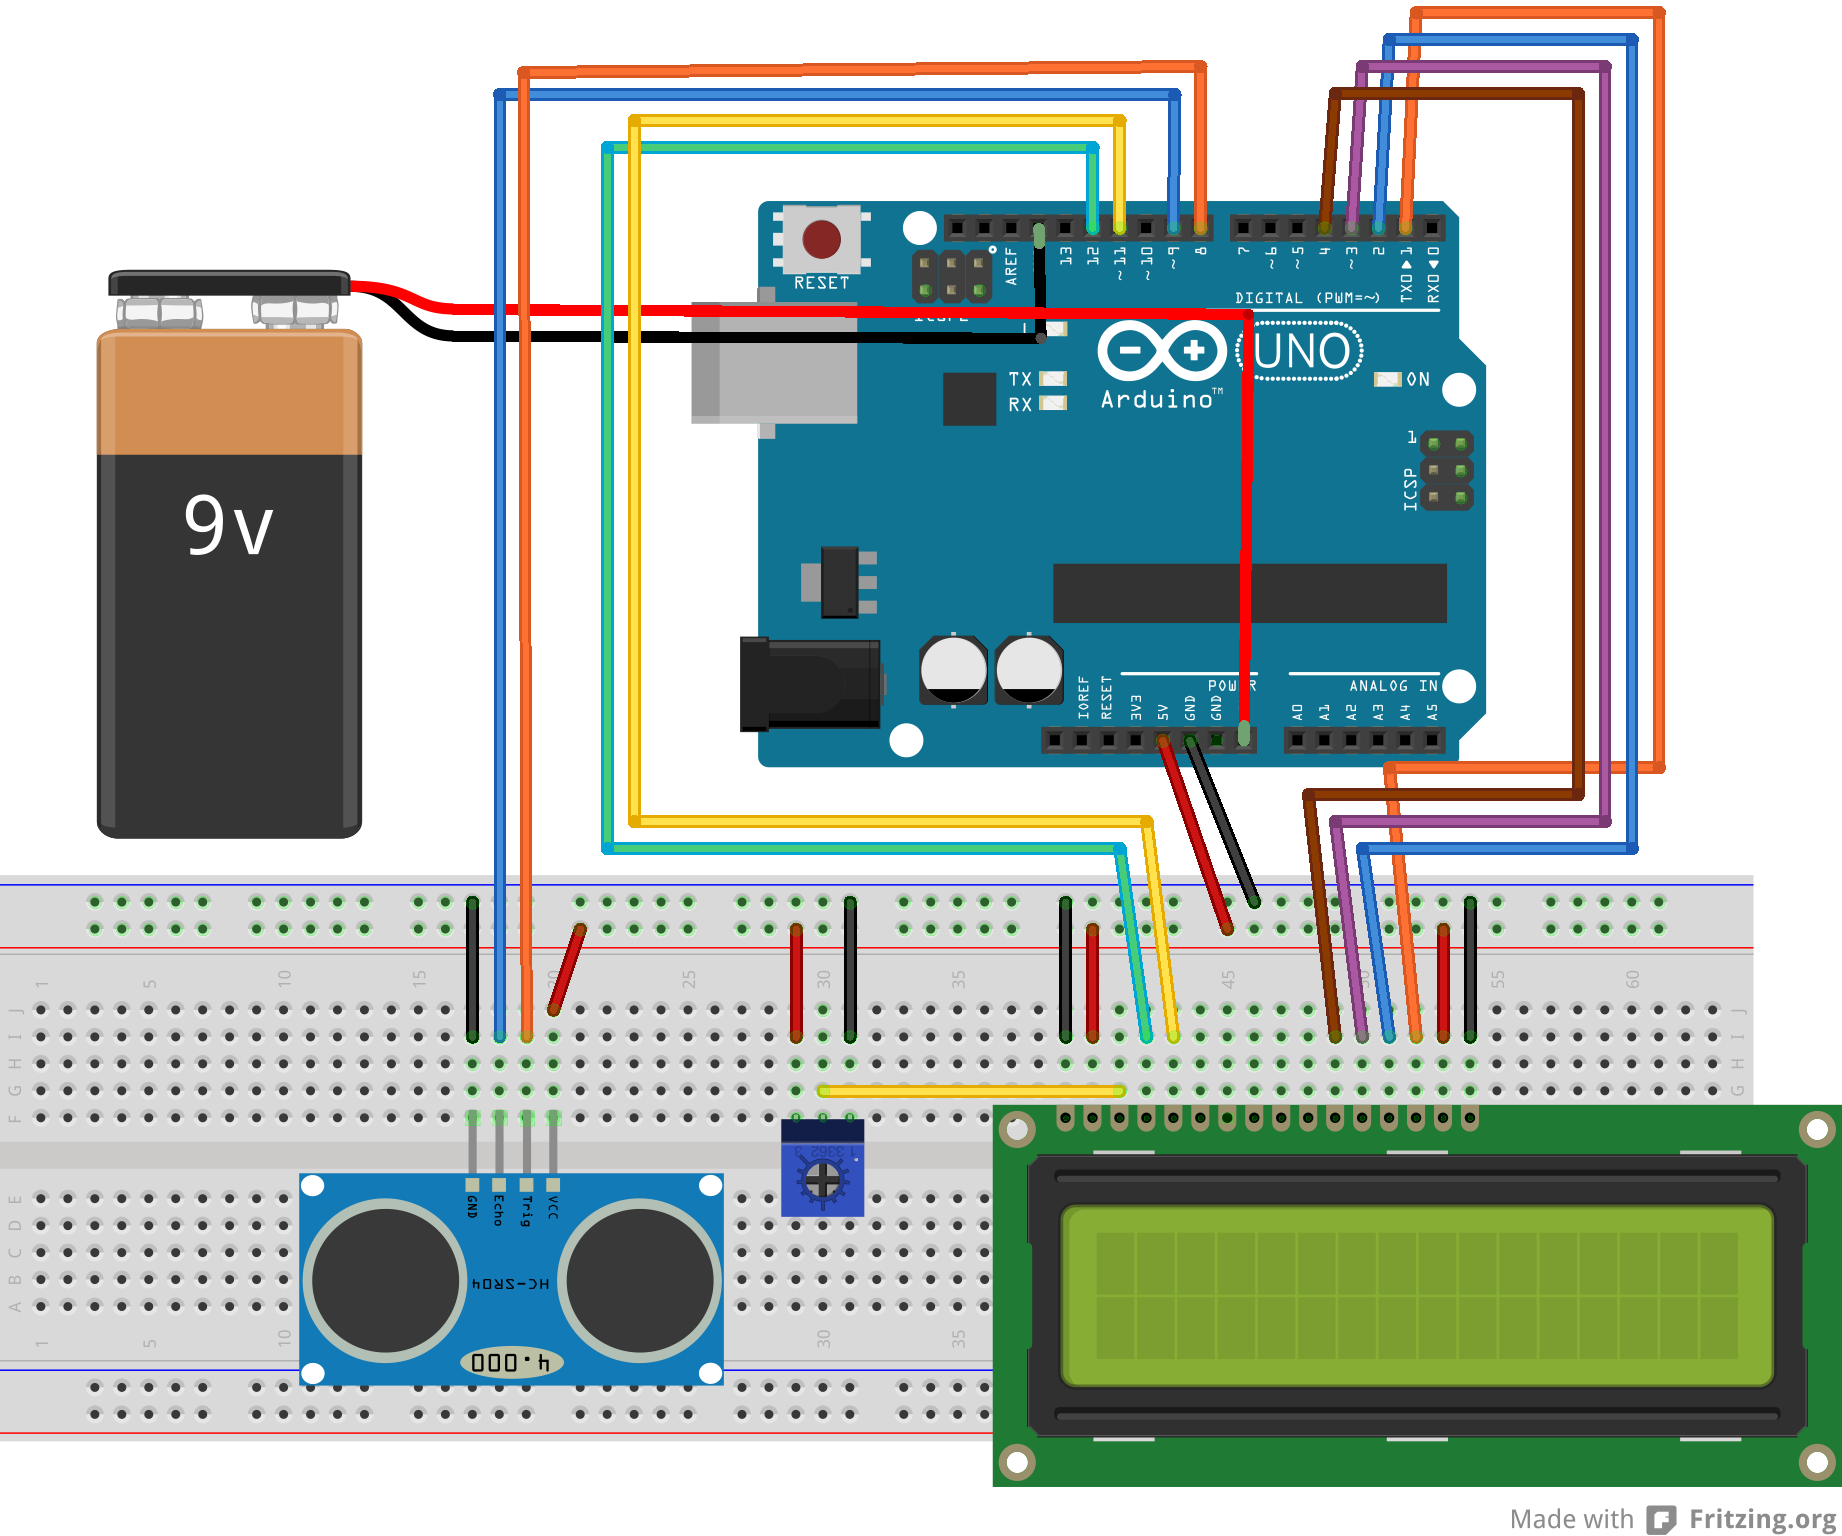 Ultrasonic Range Detector Using Arduino and the SR04